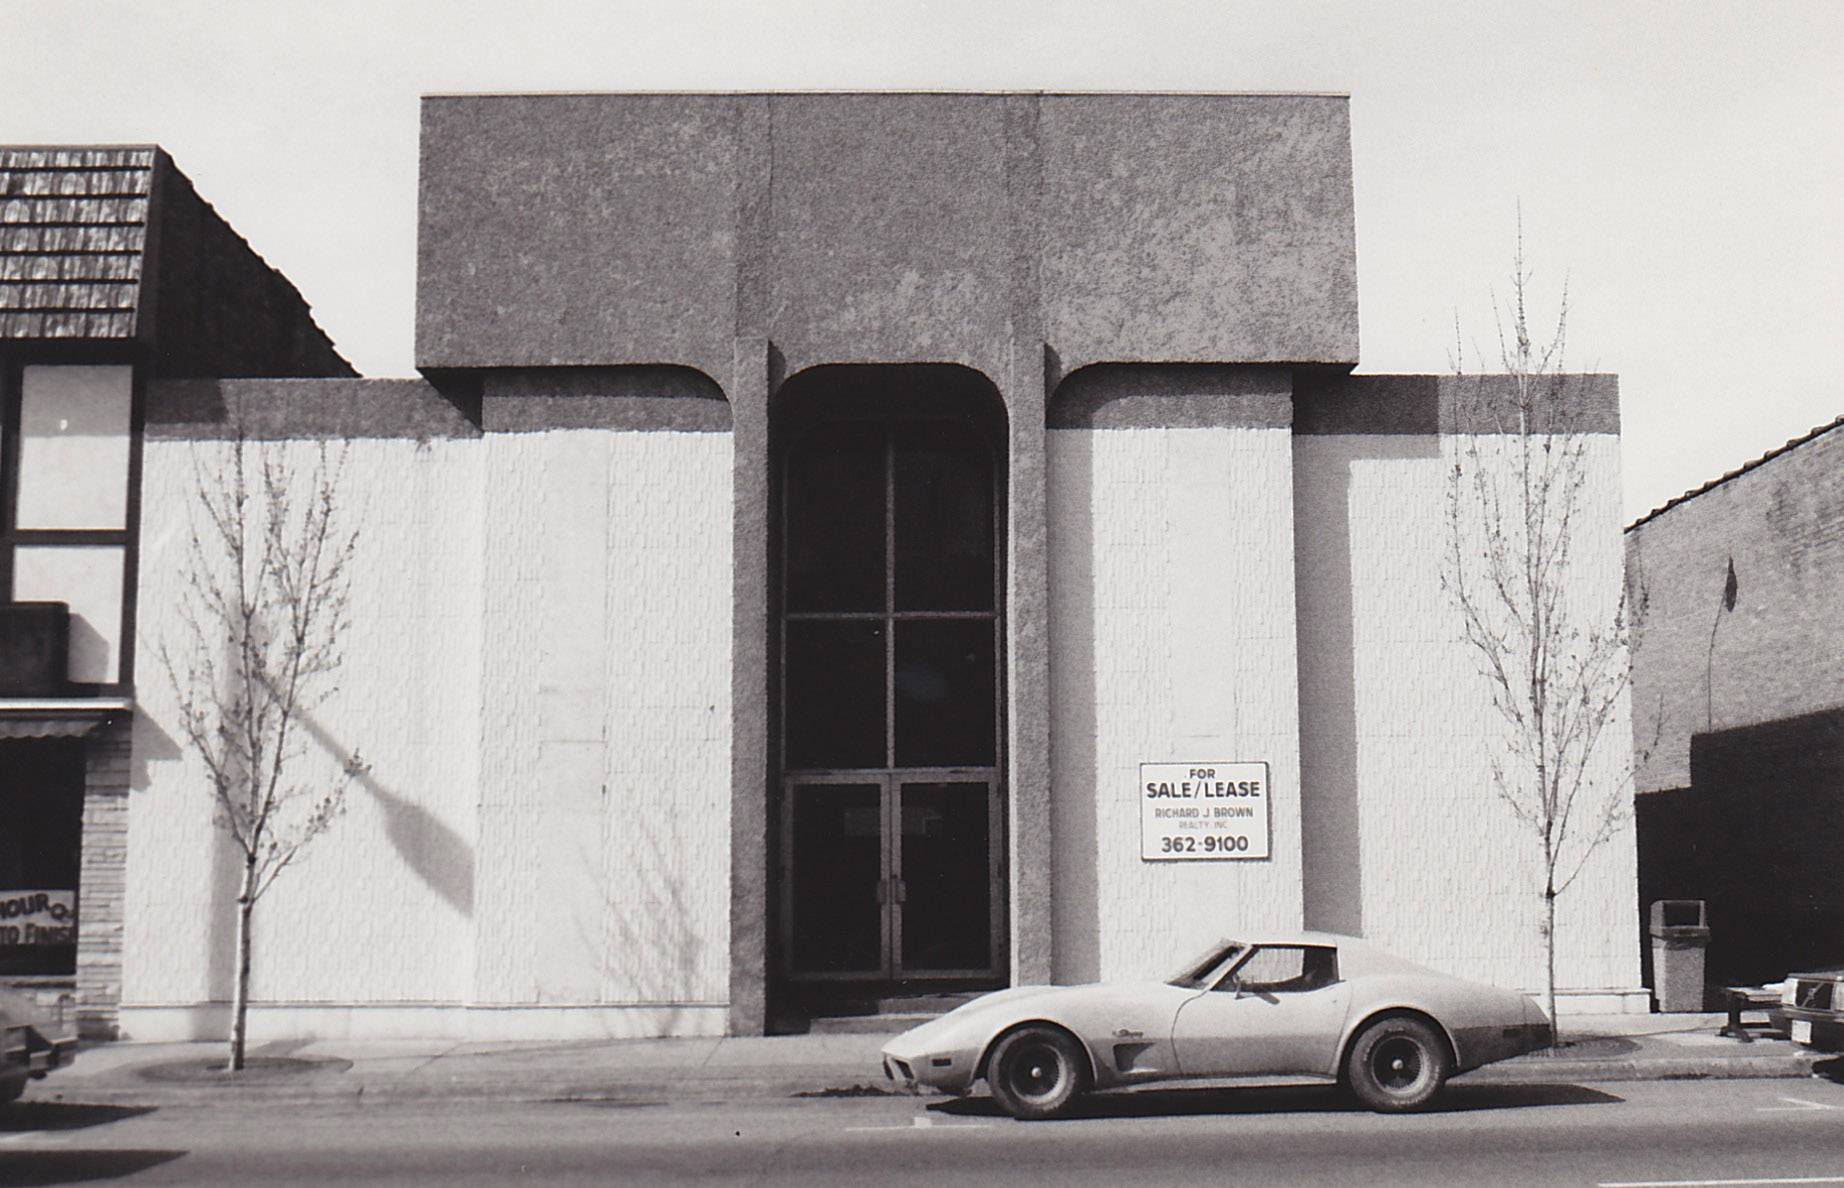 The facade of what is now the Libertyville Bank & Trust Co., in downtown Libertyville before a makeover in the 1980s.